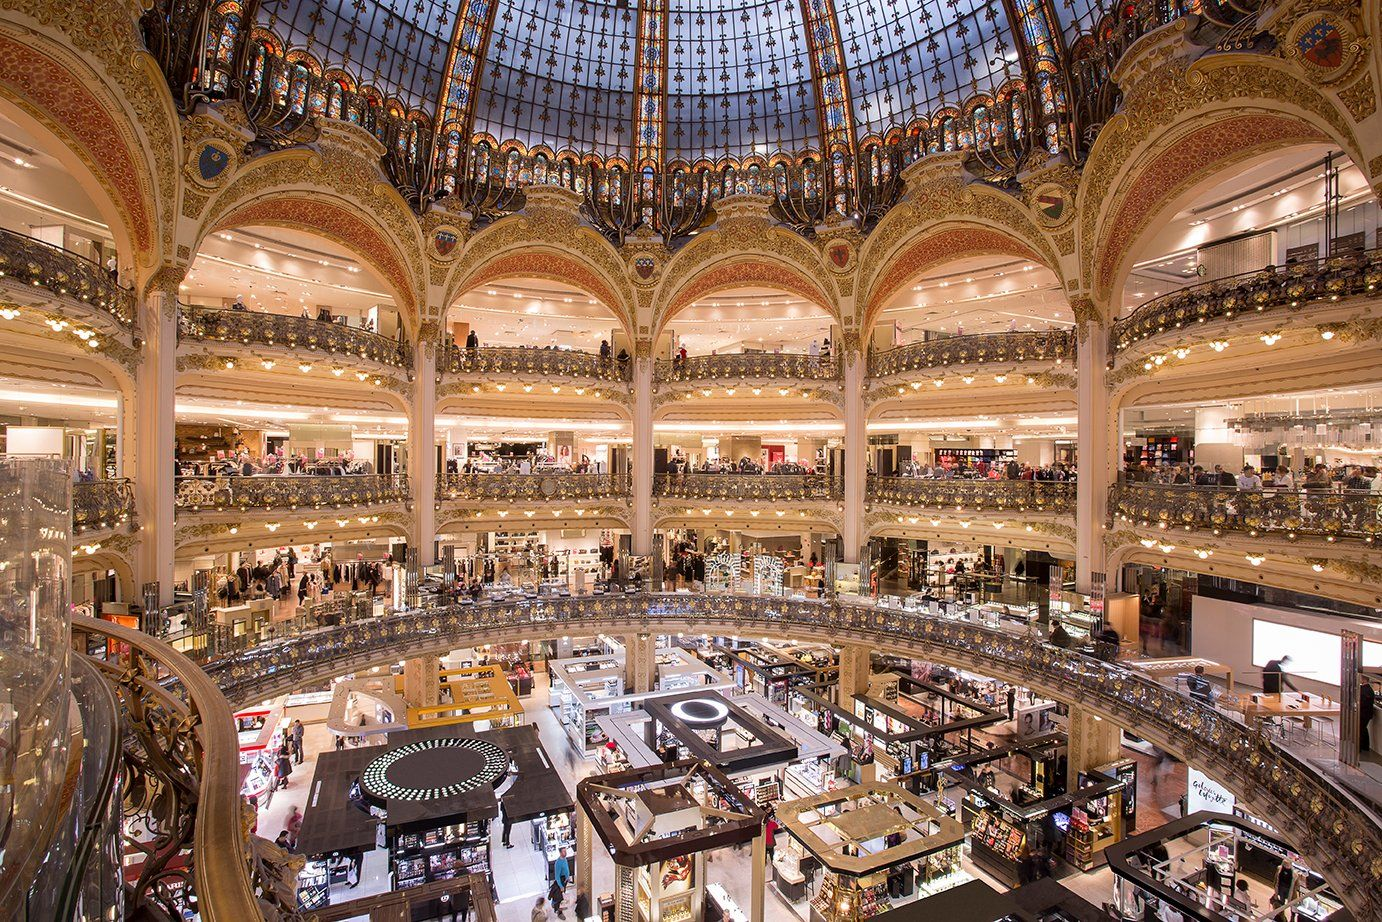 Book Your Tickets Online For Galeries Lafayette Haussmann Paris See 4 865 Reviews Articles And 4 327 Photos Of Paris City Guide Lafayette Paris Paris City